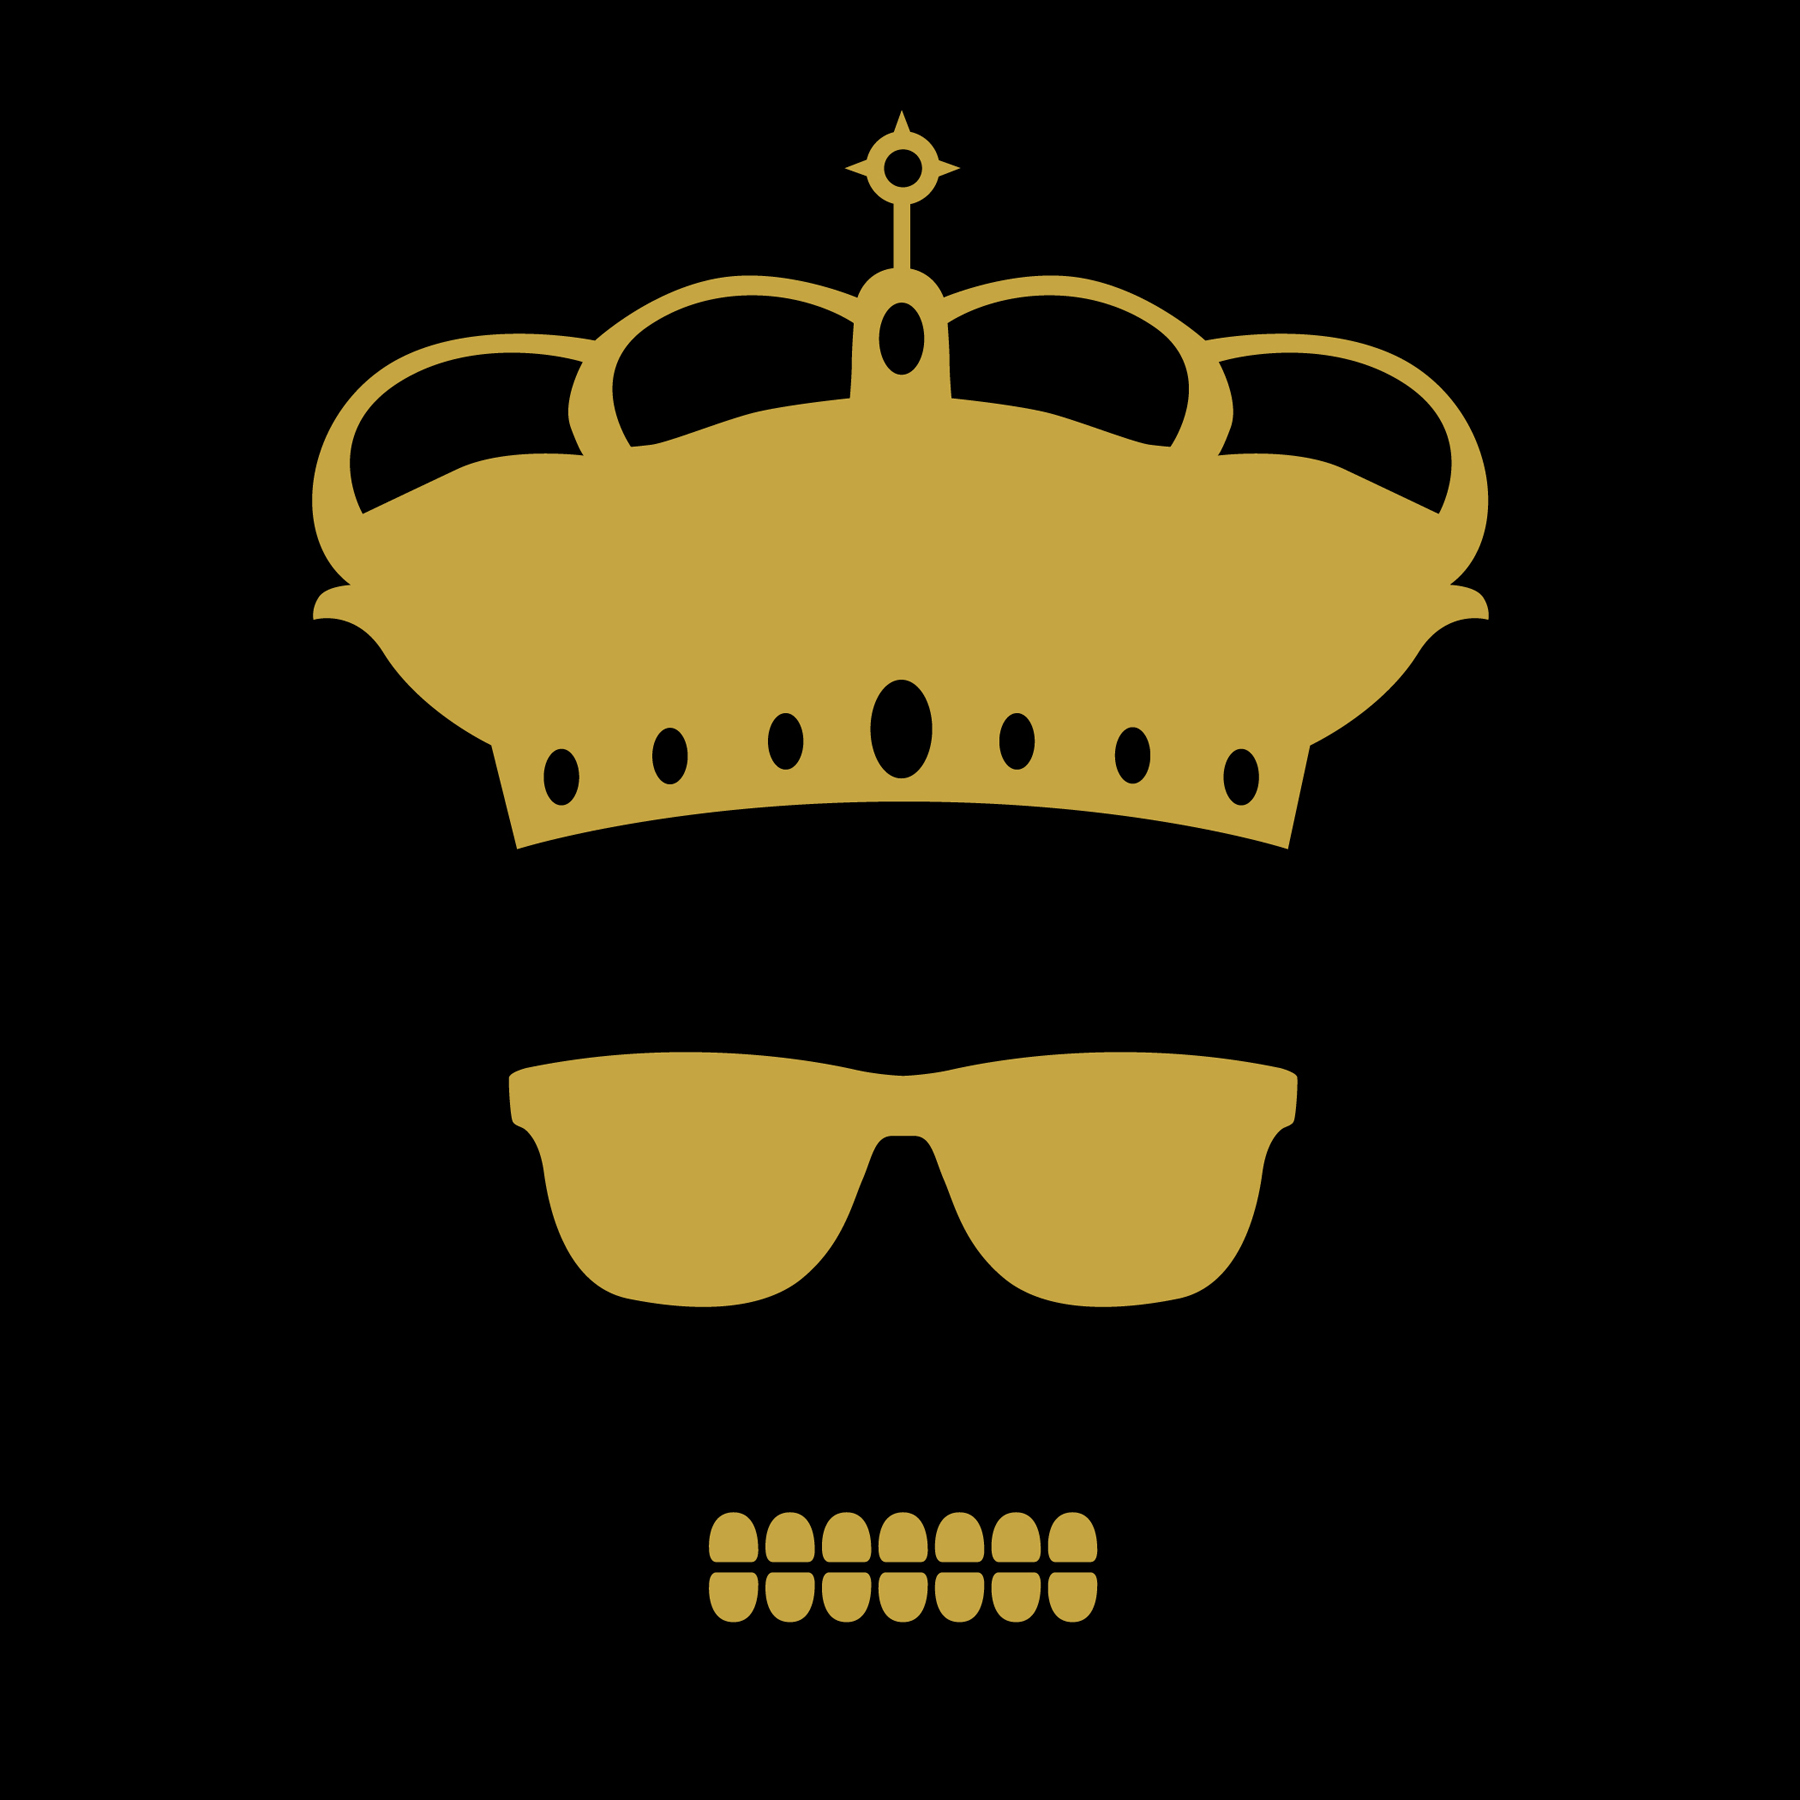 Ray-Ban Never Hide, Colorize, Royalty